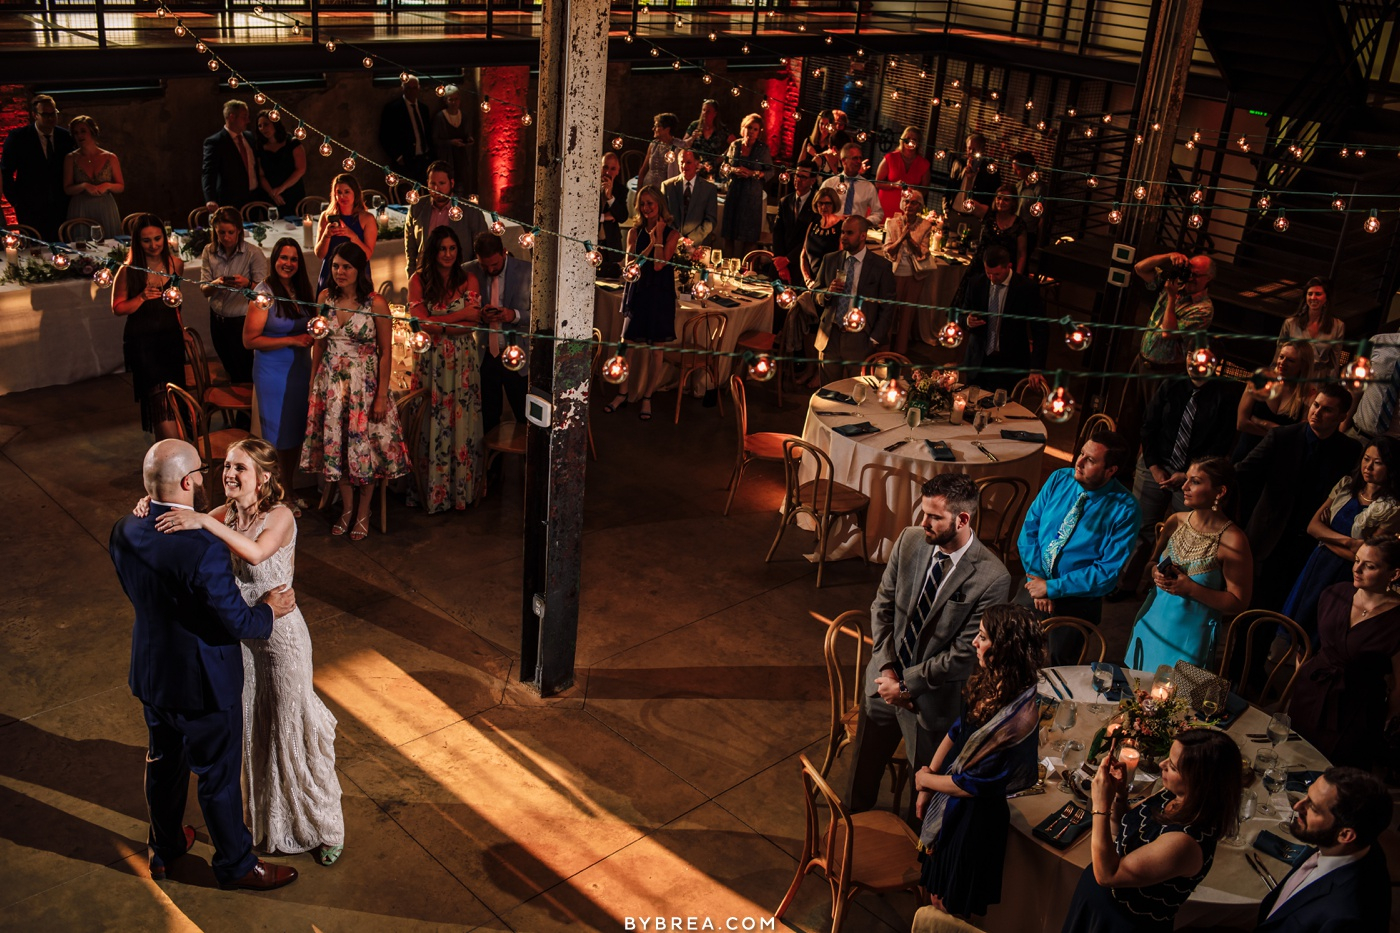 One of the Best Wedding Venues in Baltimore, The Winslow